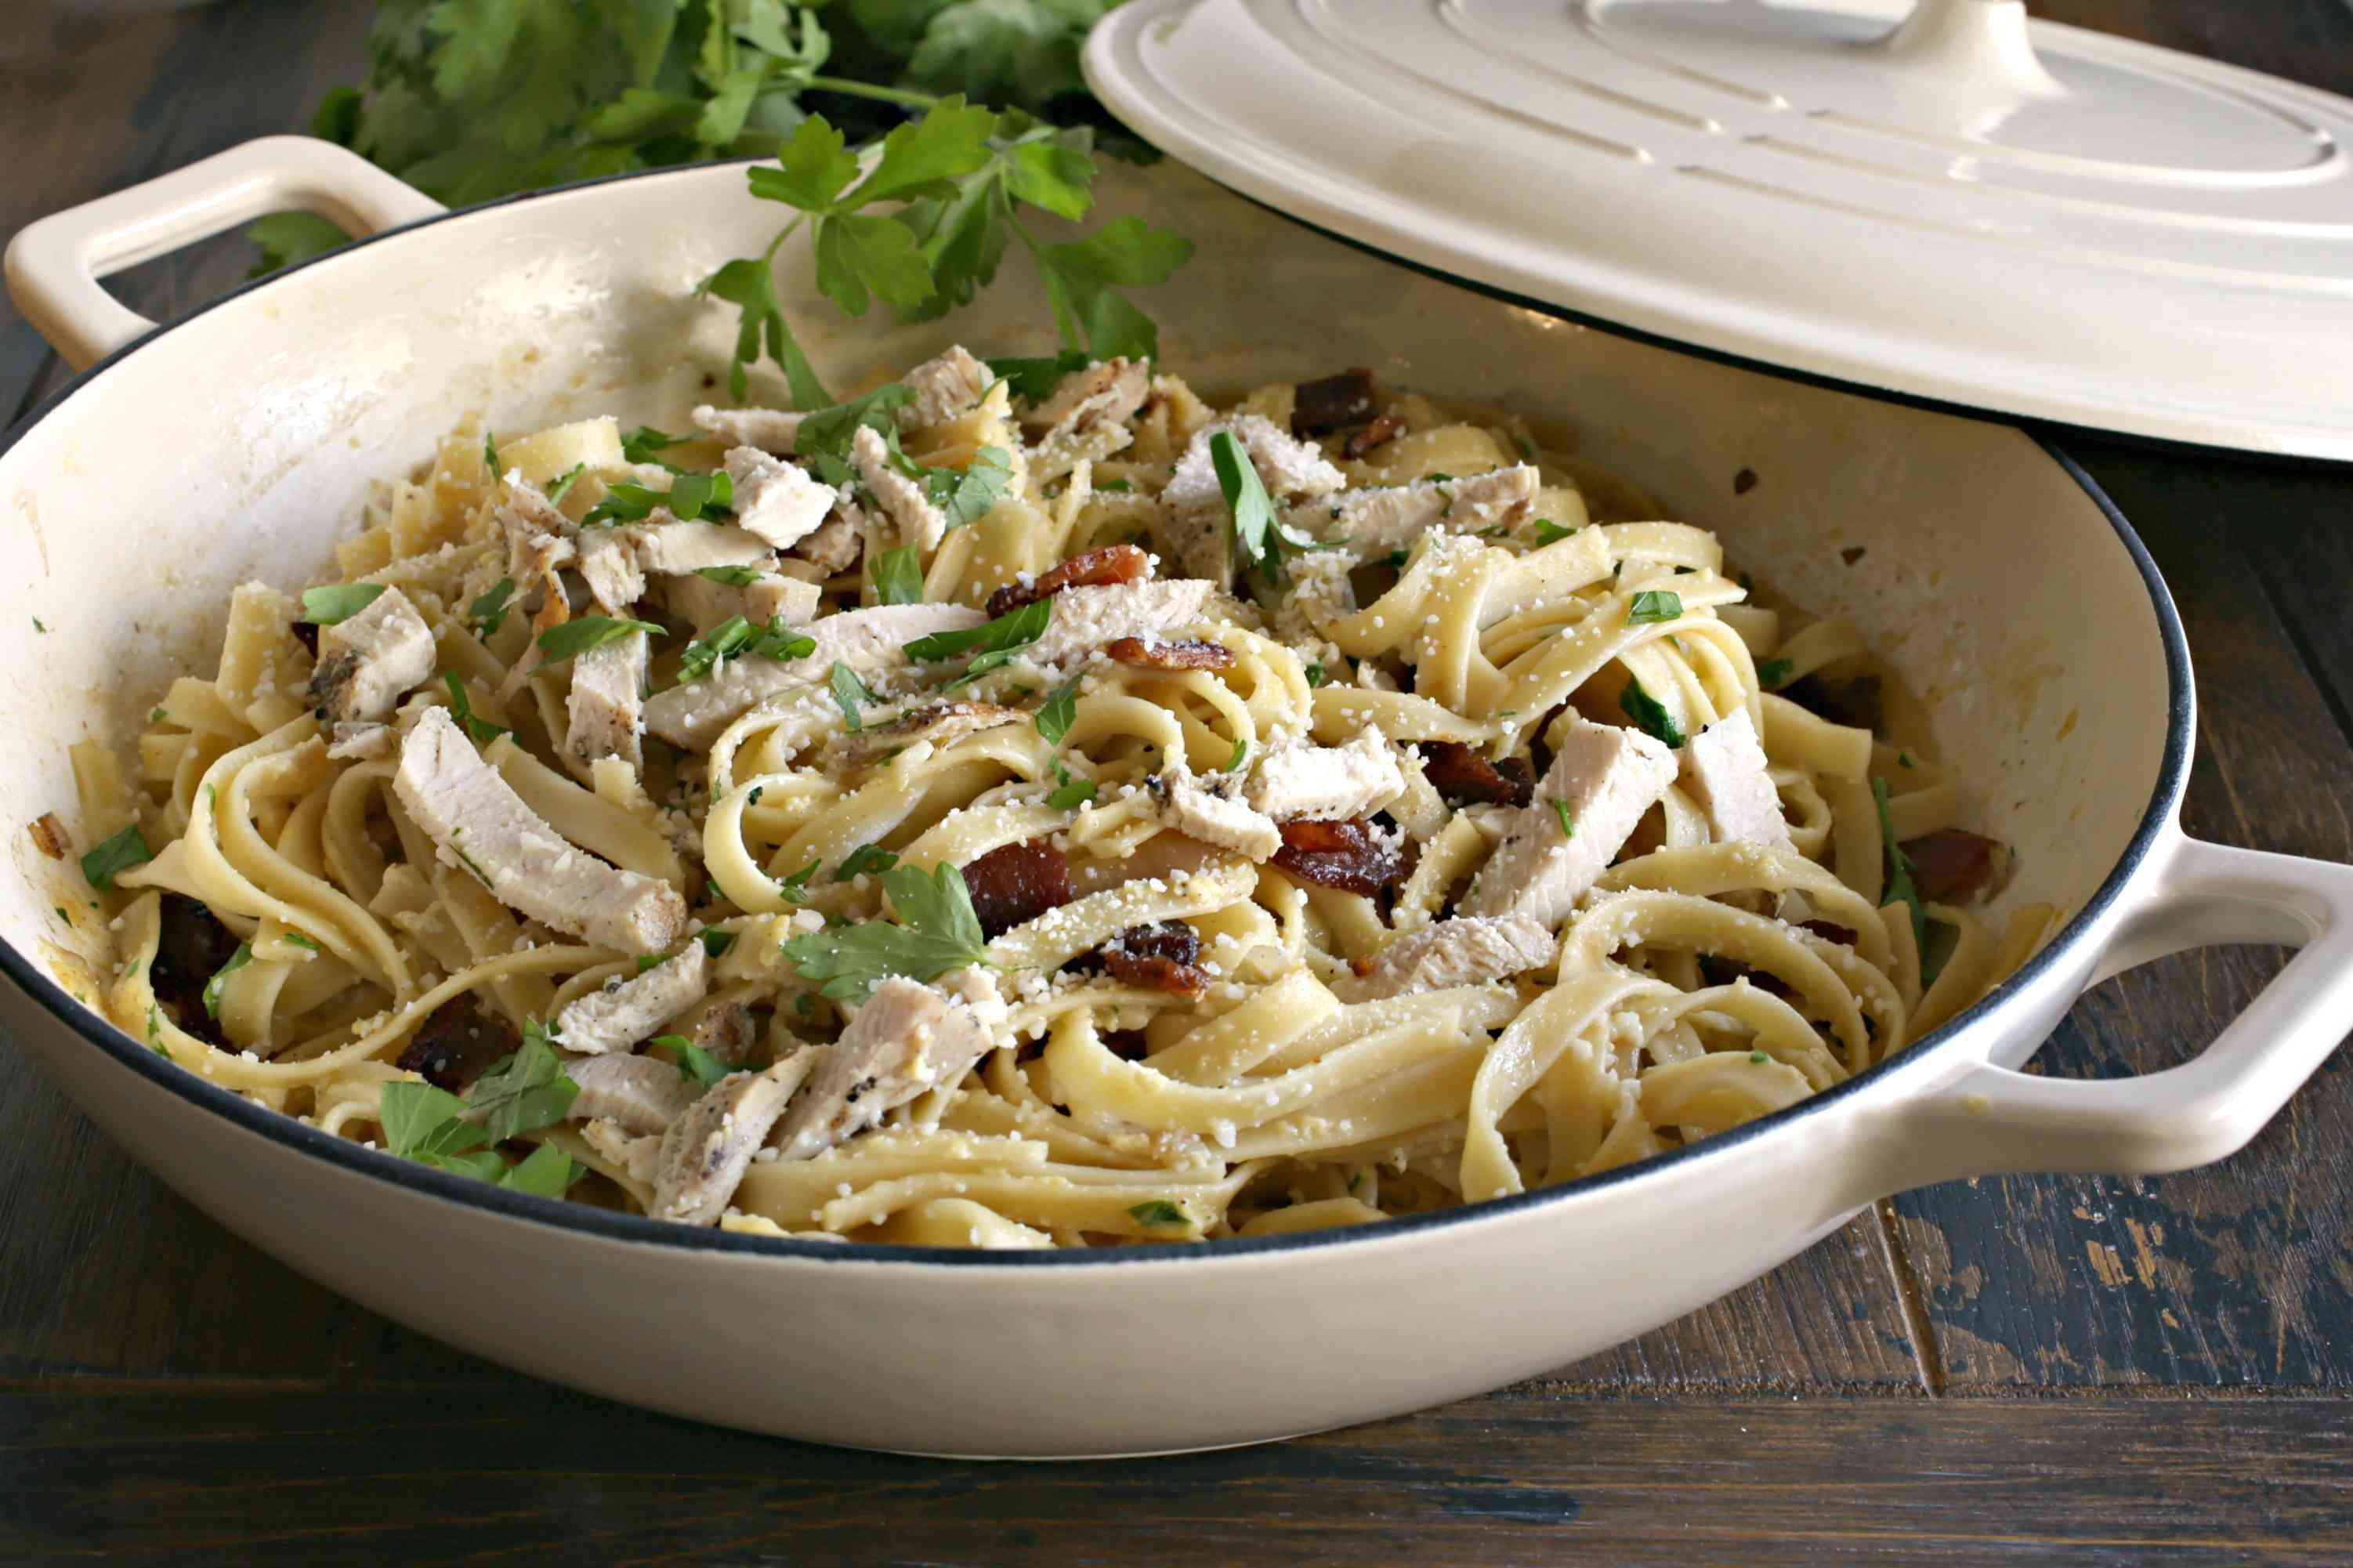 Chicken carbonara in a serving bowl with parsley garnish